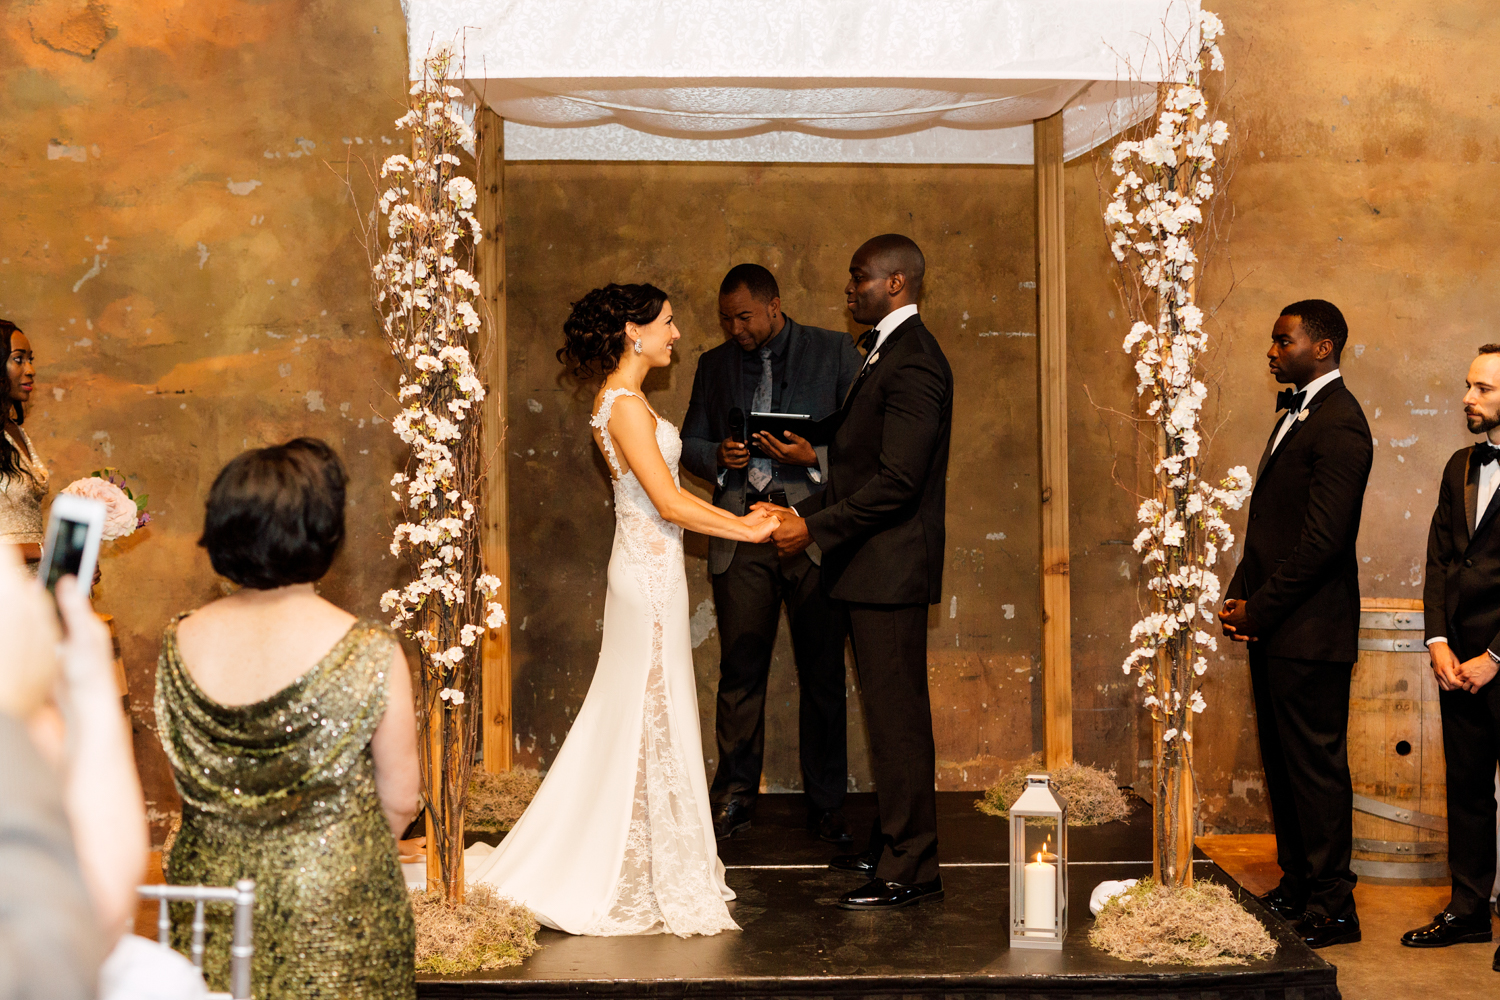 The Fermenting Cellar wedding ceremony